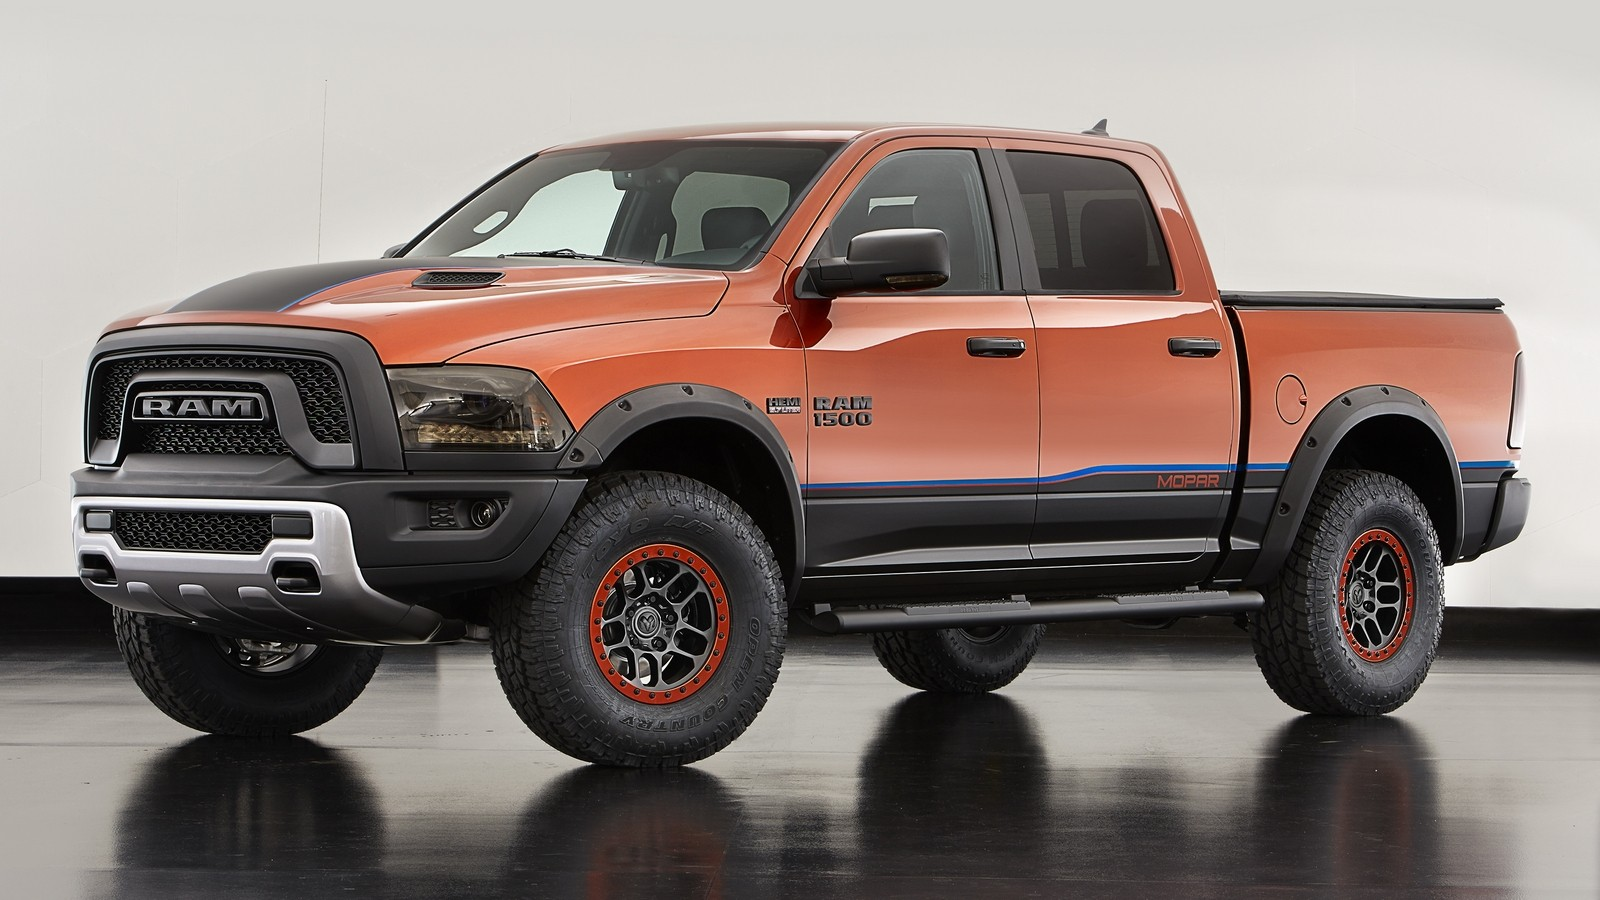 The Ram Rebel X is among the Mopar-modified vehicles showcased a